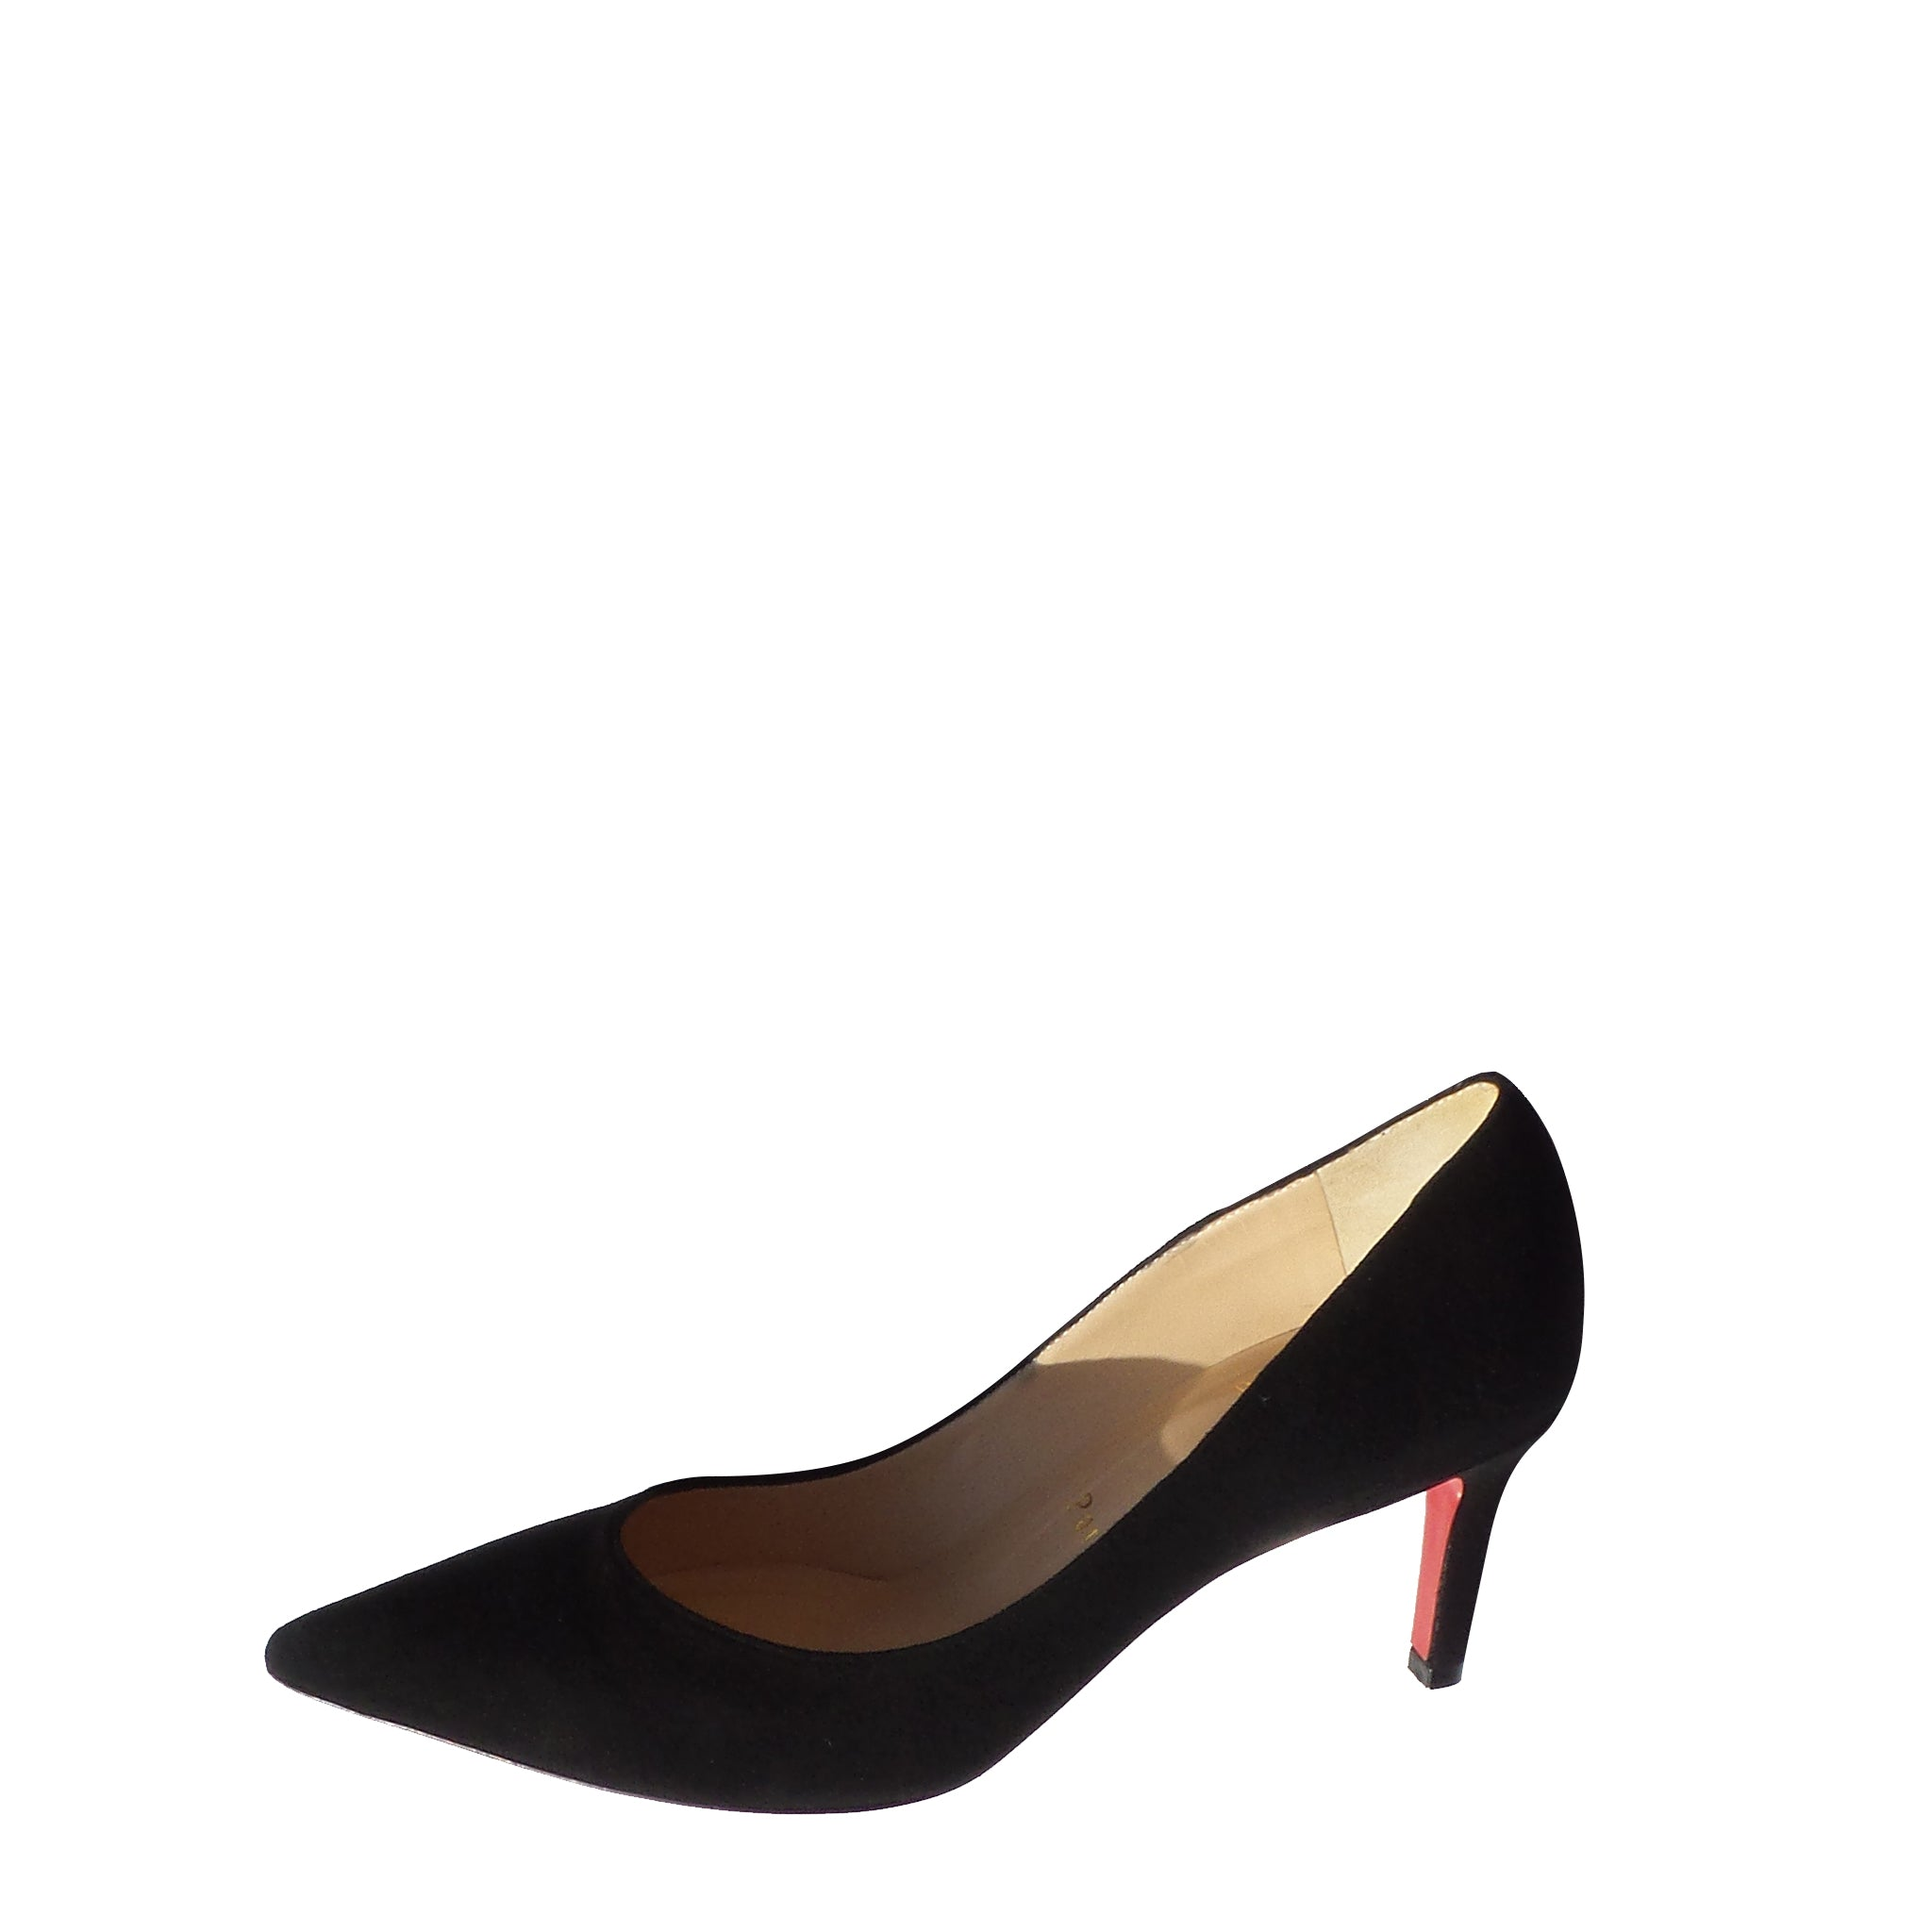 pretty nice 14a85 7015c CHRISTIAN LOUBOUTIN Black Suede Mid Heel Classic Pumps 36.5 NOB